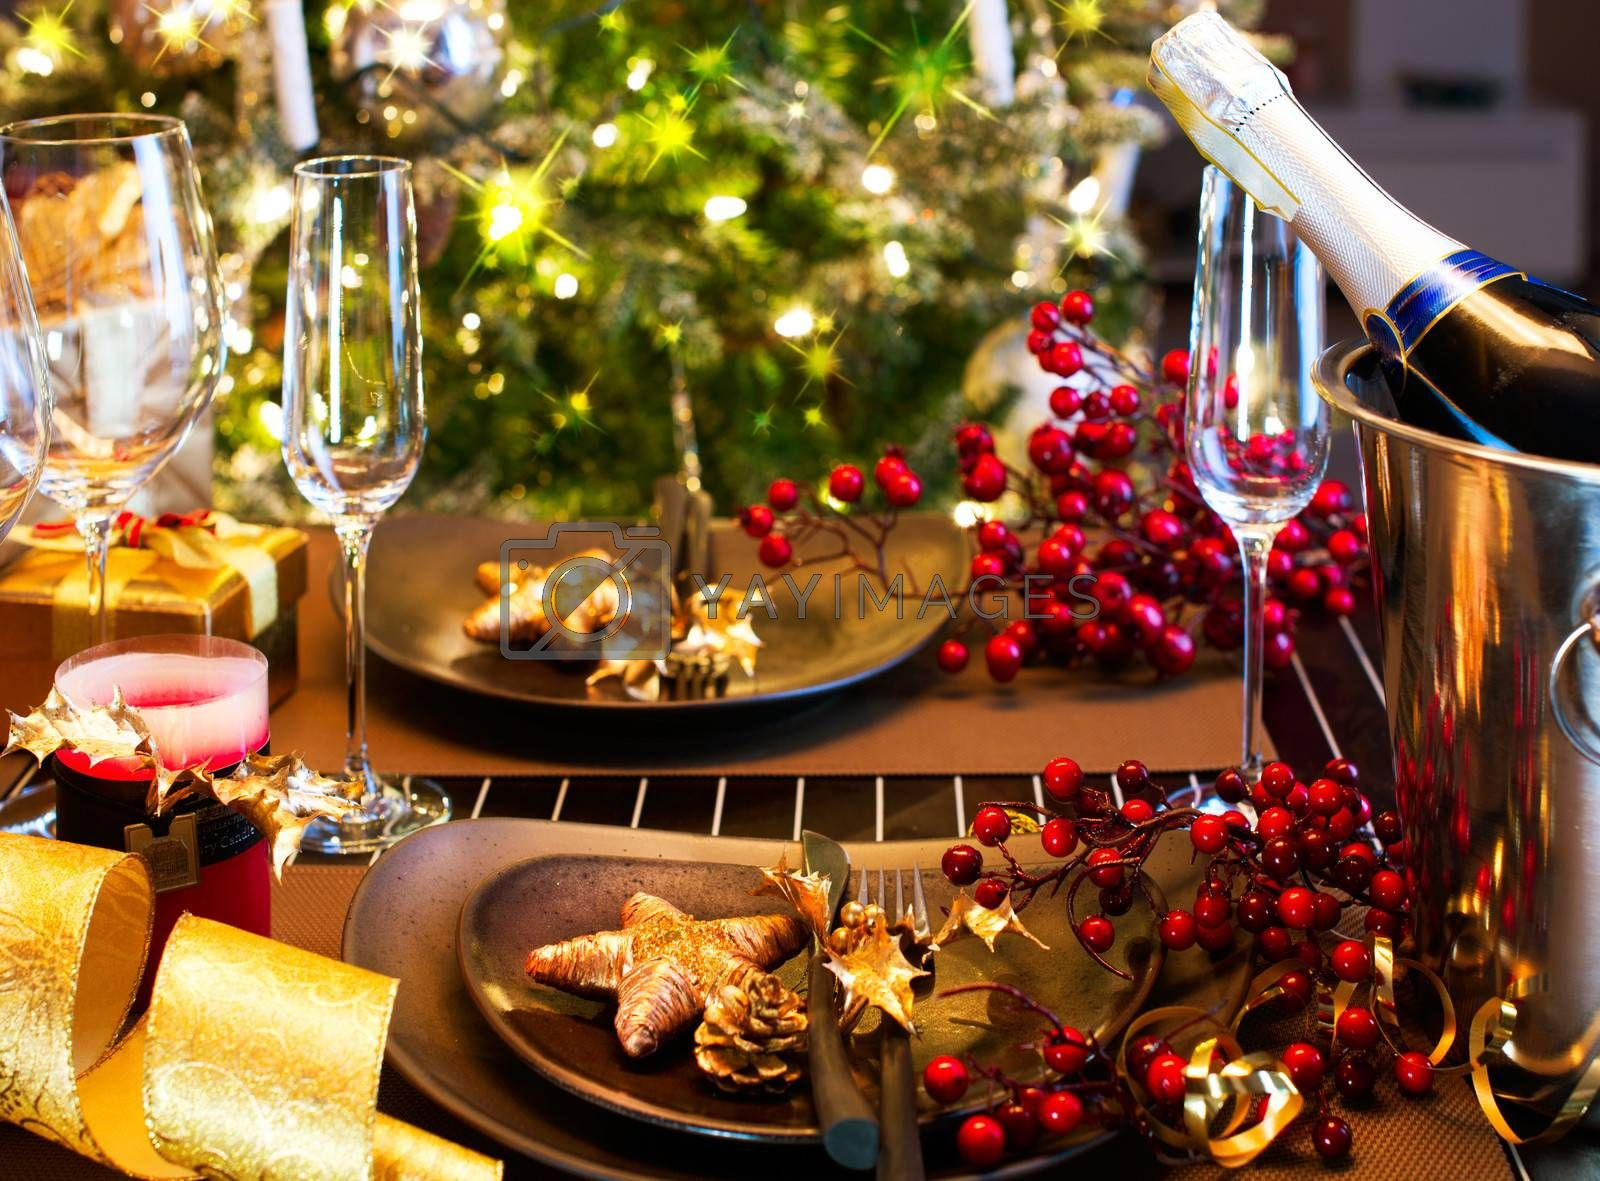 Christmas And New Year Holiday Table Setting. Celebration by SubbotinaA